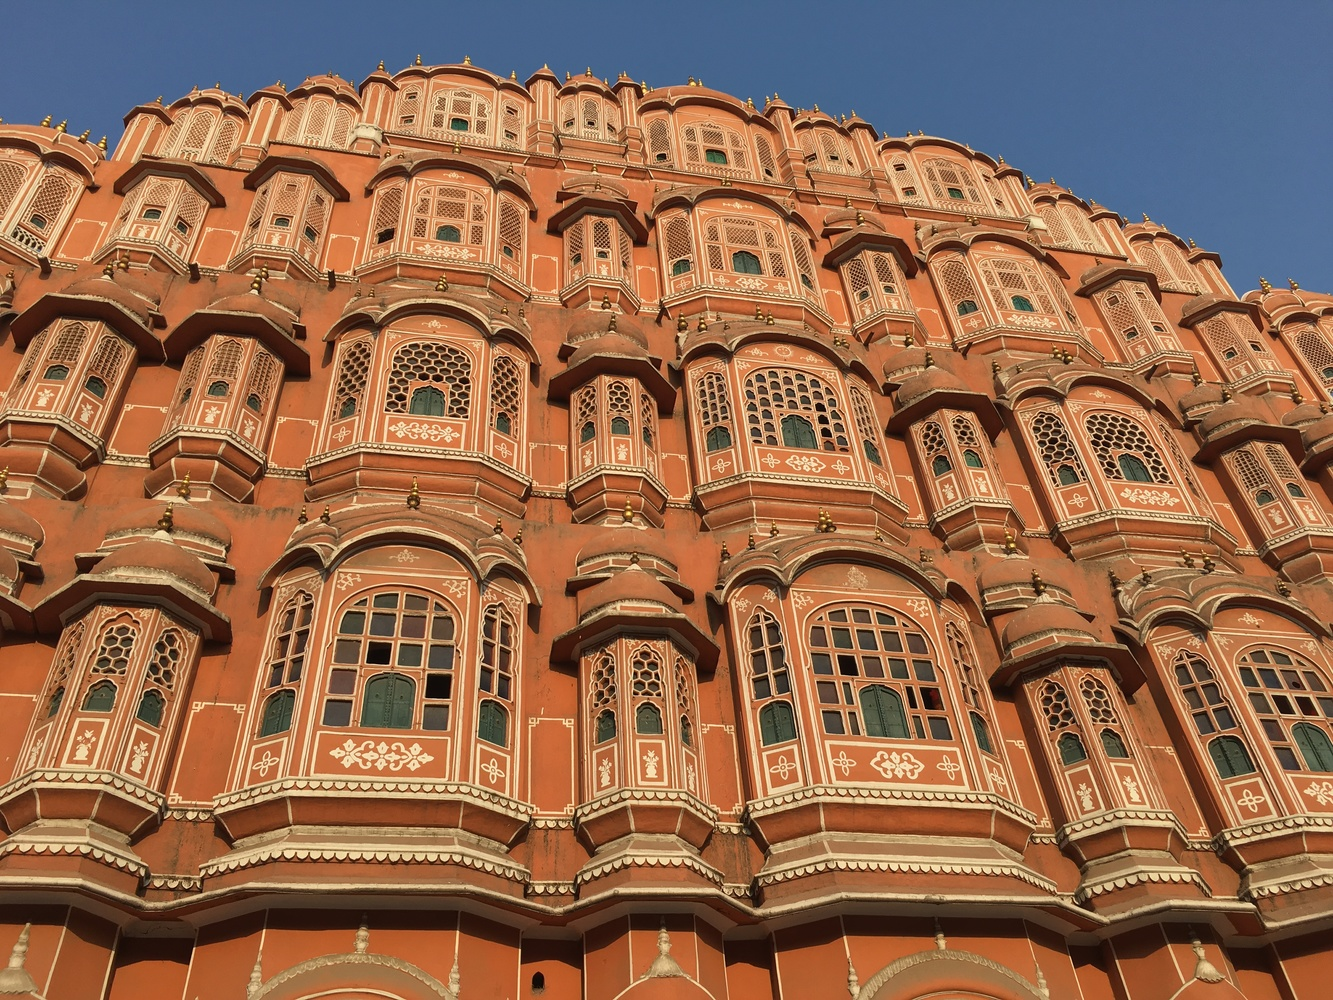 Hawa Mahal, Jaipur IN by Kalpesh Purohit